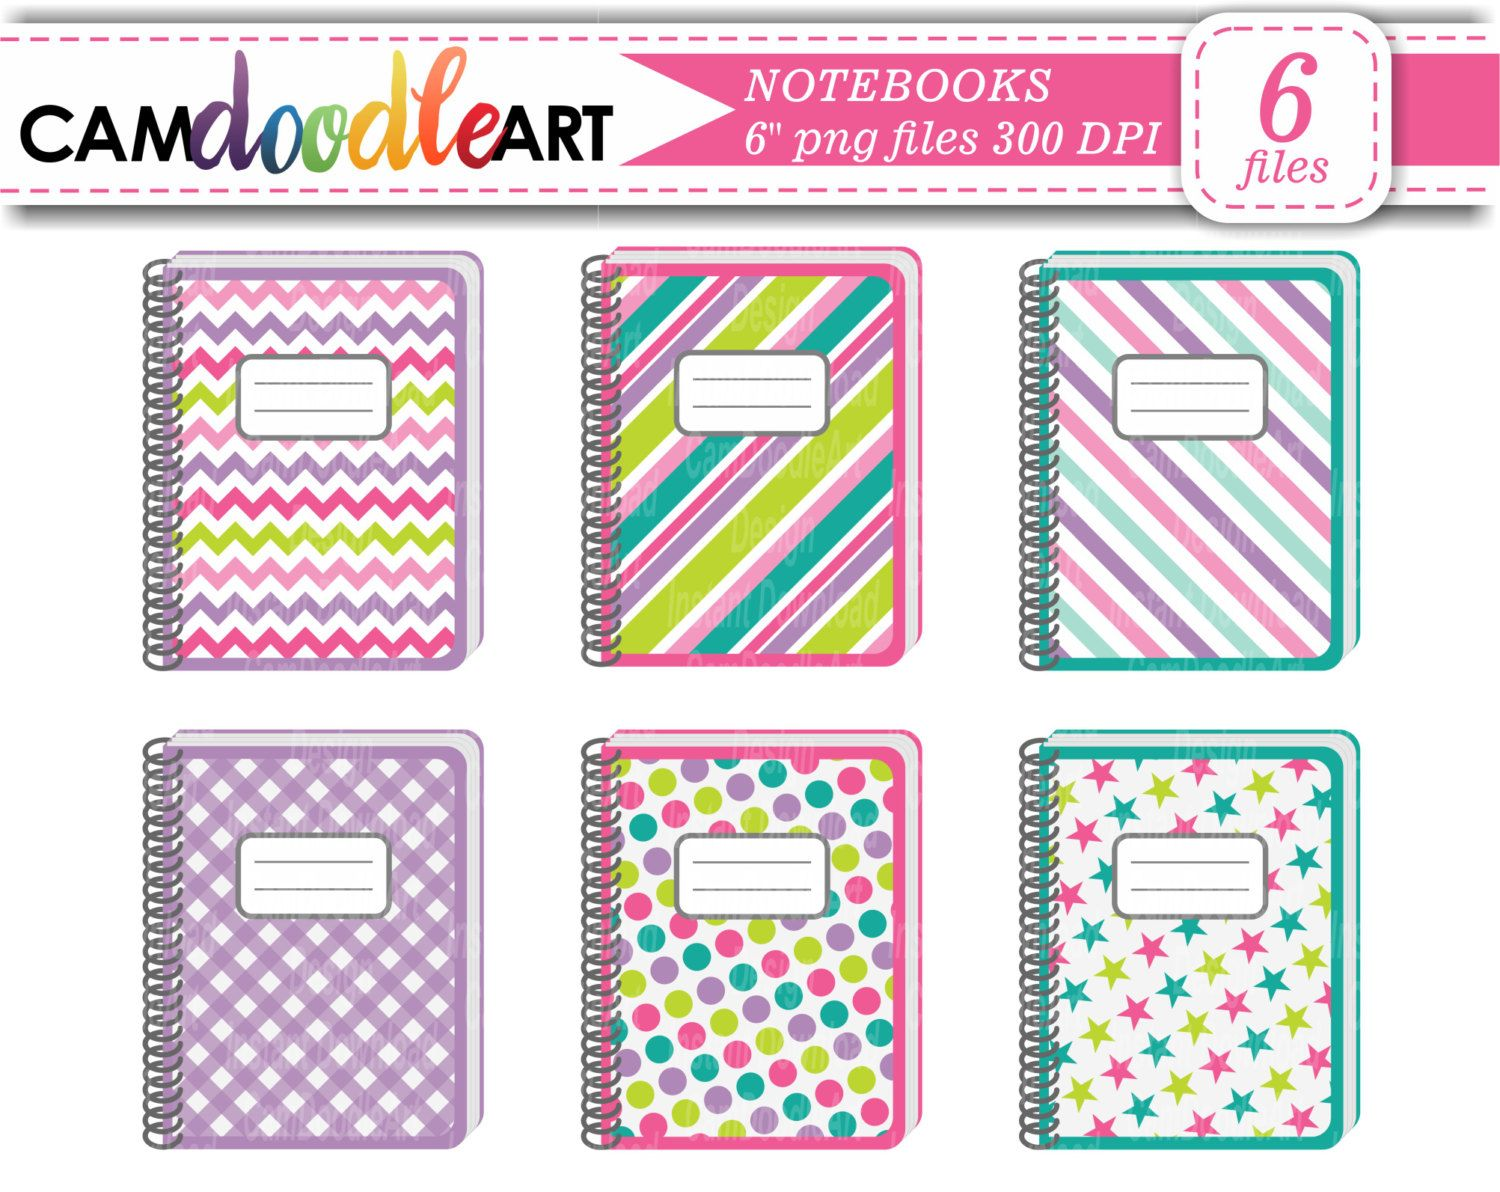 Notebook clipart pink notebook. Notebooks collection green purple